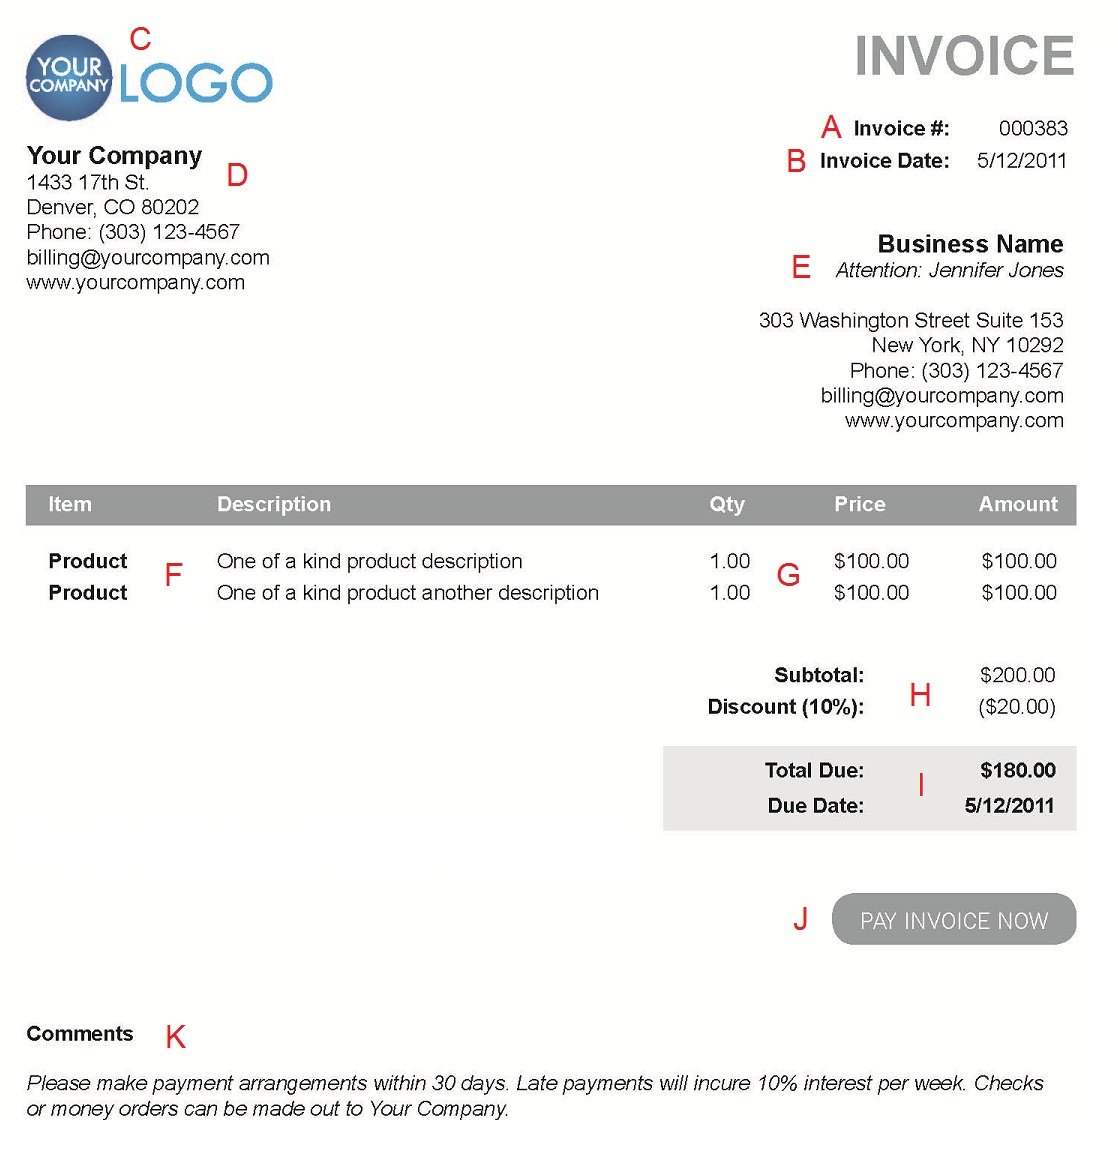 Ultrablogus  Personable The  Different Sections Of An Electronic Payment Invoice With Inspiring A  With Captivating Receipt Voucher Template Also How To Create Receipt In Addition Used Car Receipt Of Sale And Sample Of Receipt Book As Well As Cash Book Receipts And Payments Additionally Acknowledgement Receipt Definition From Paysimplecom With Ultrablogus  Inspiring The  Different Sections Of An Electronic Payment Invoice With Captivating A  And Personable Receipt Voucher Template Also How To Create Receipt In Addition Used Car Receipt Of Sale From Paysimplecom